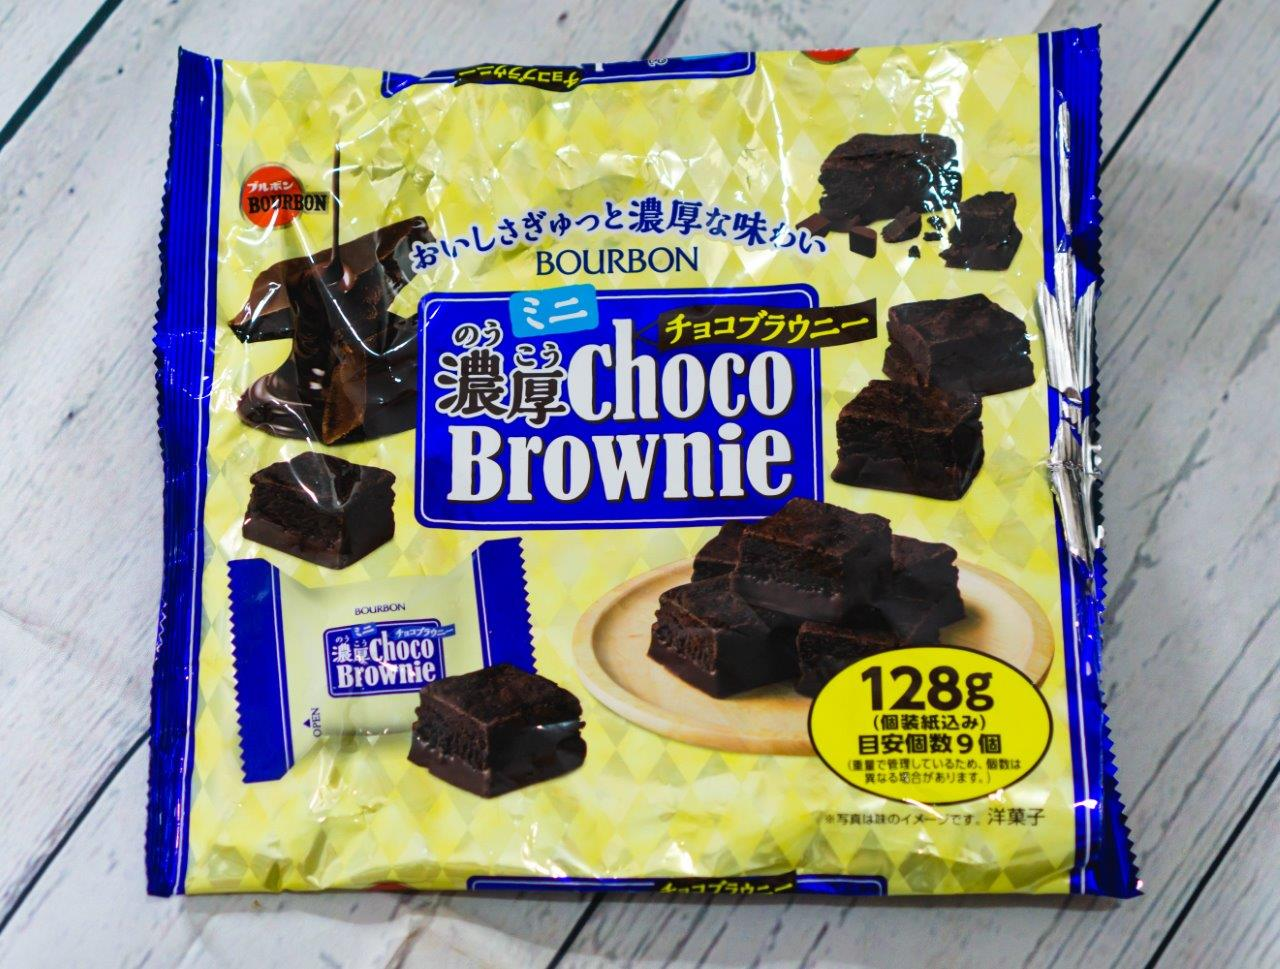 bourbon choco brownie, japan best souvenirs